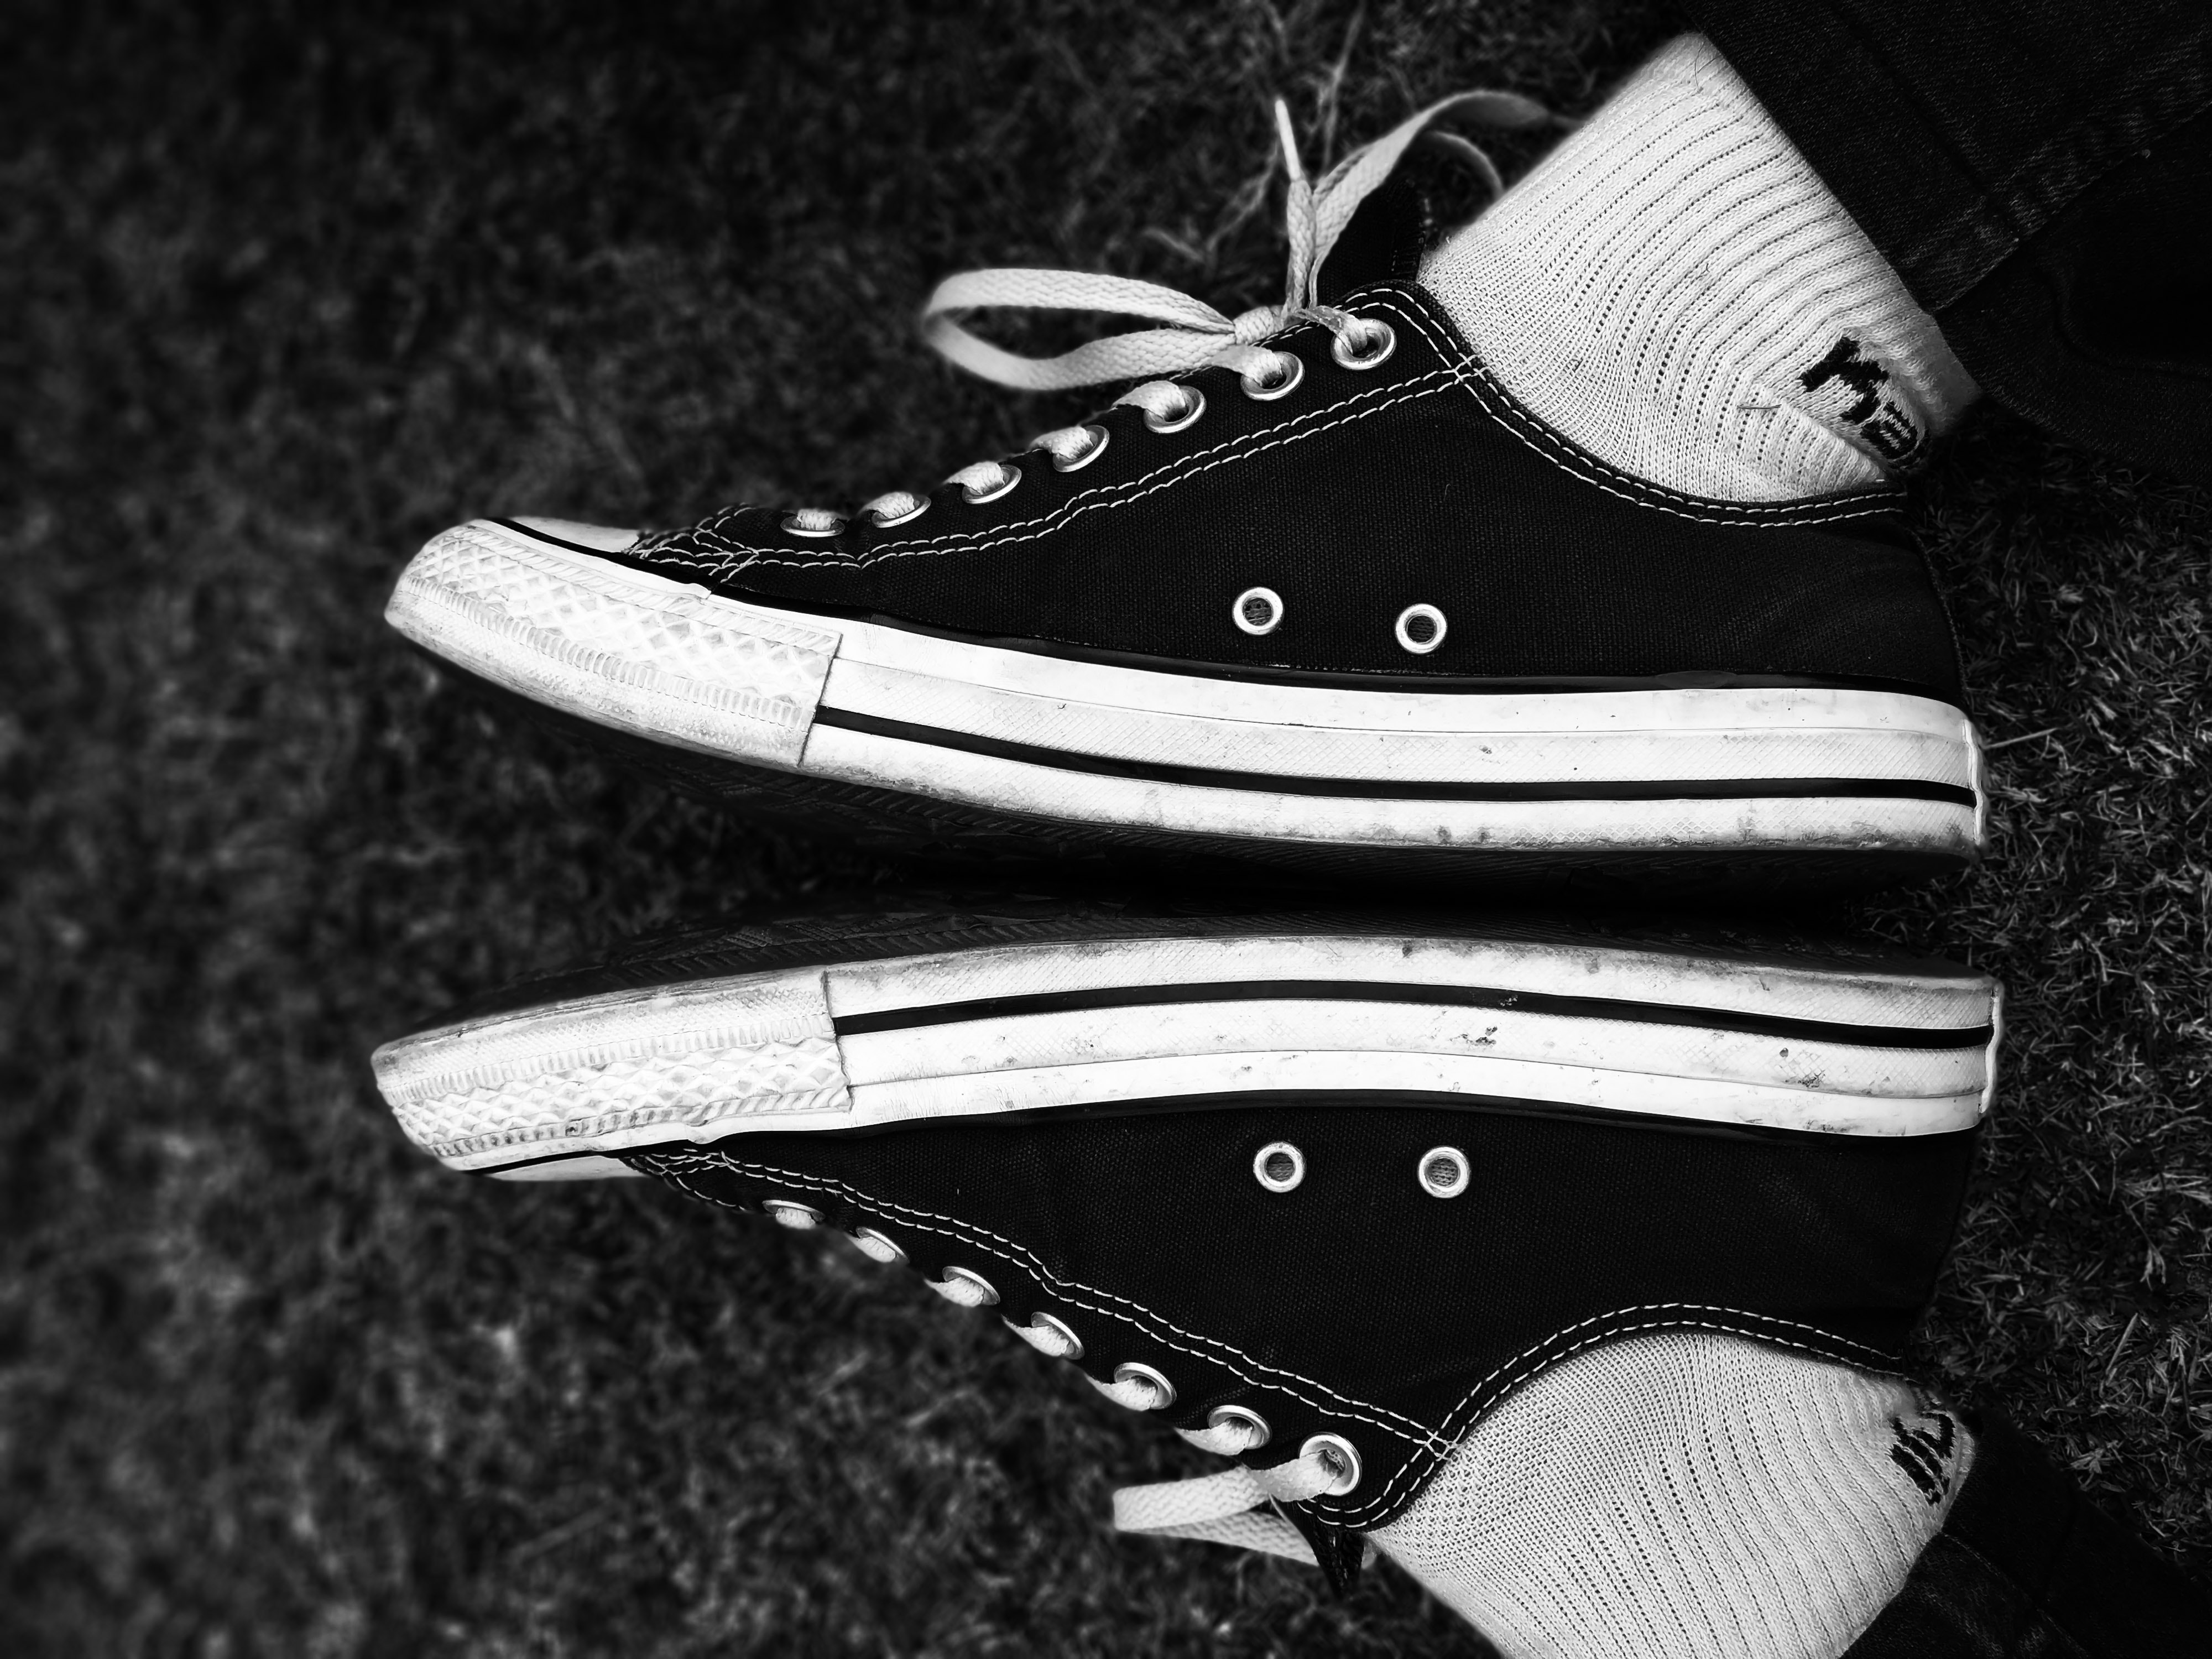 Free stock photo of black shoes 340a860d0